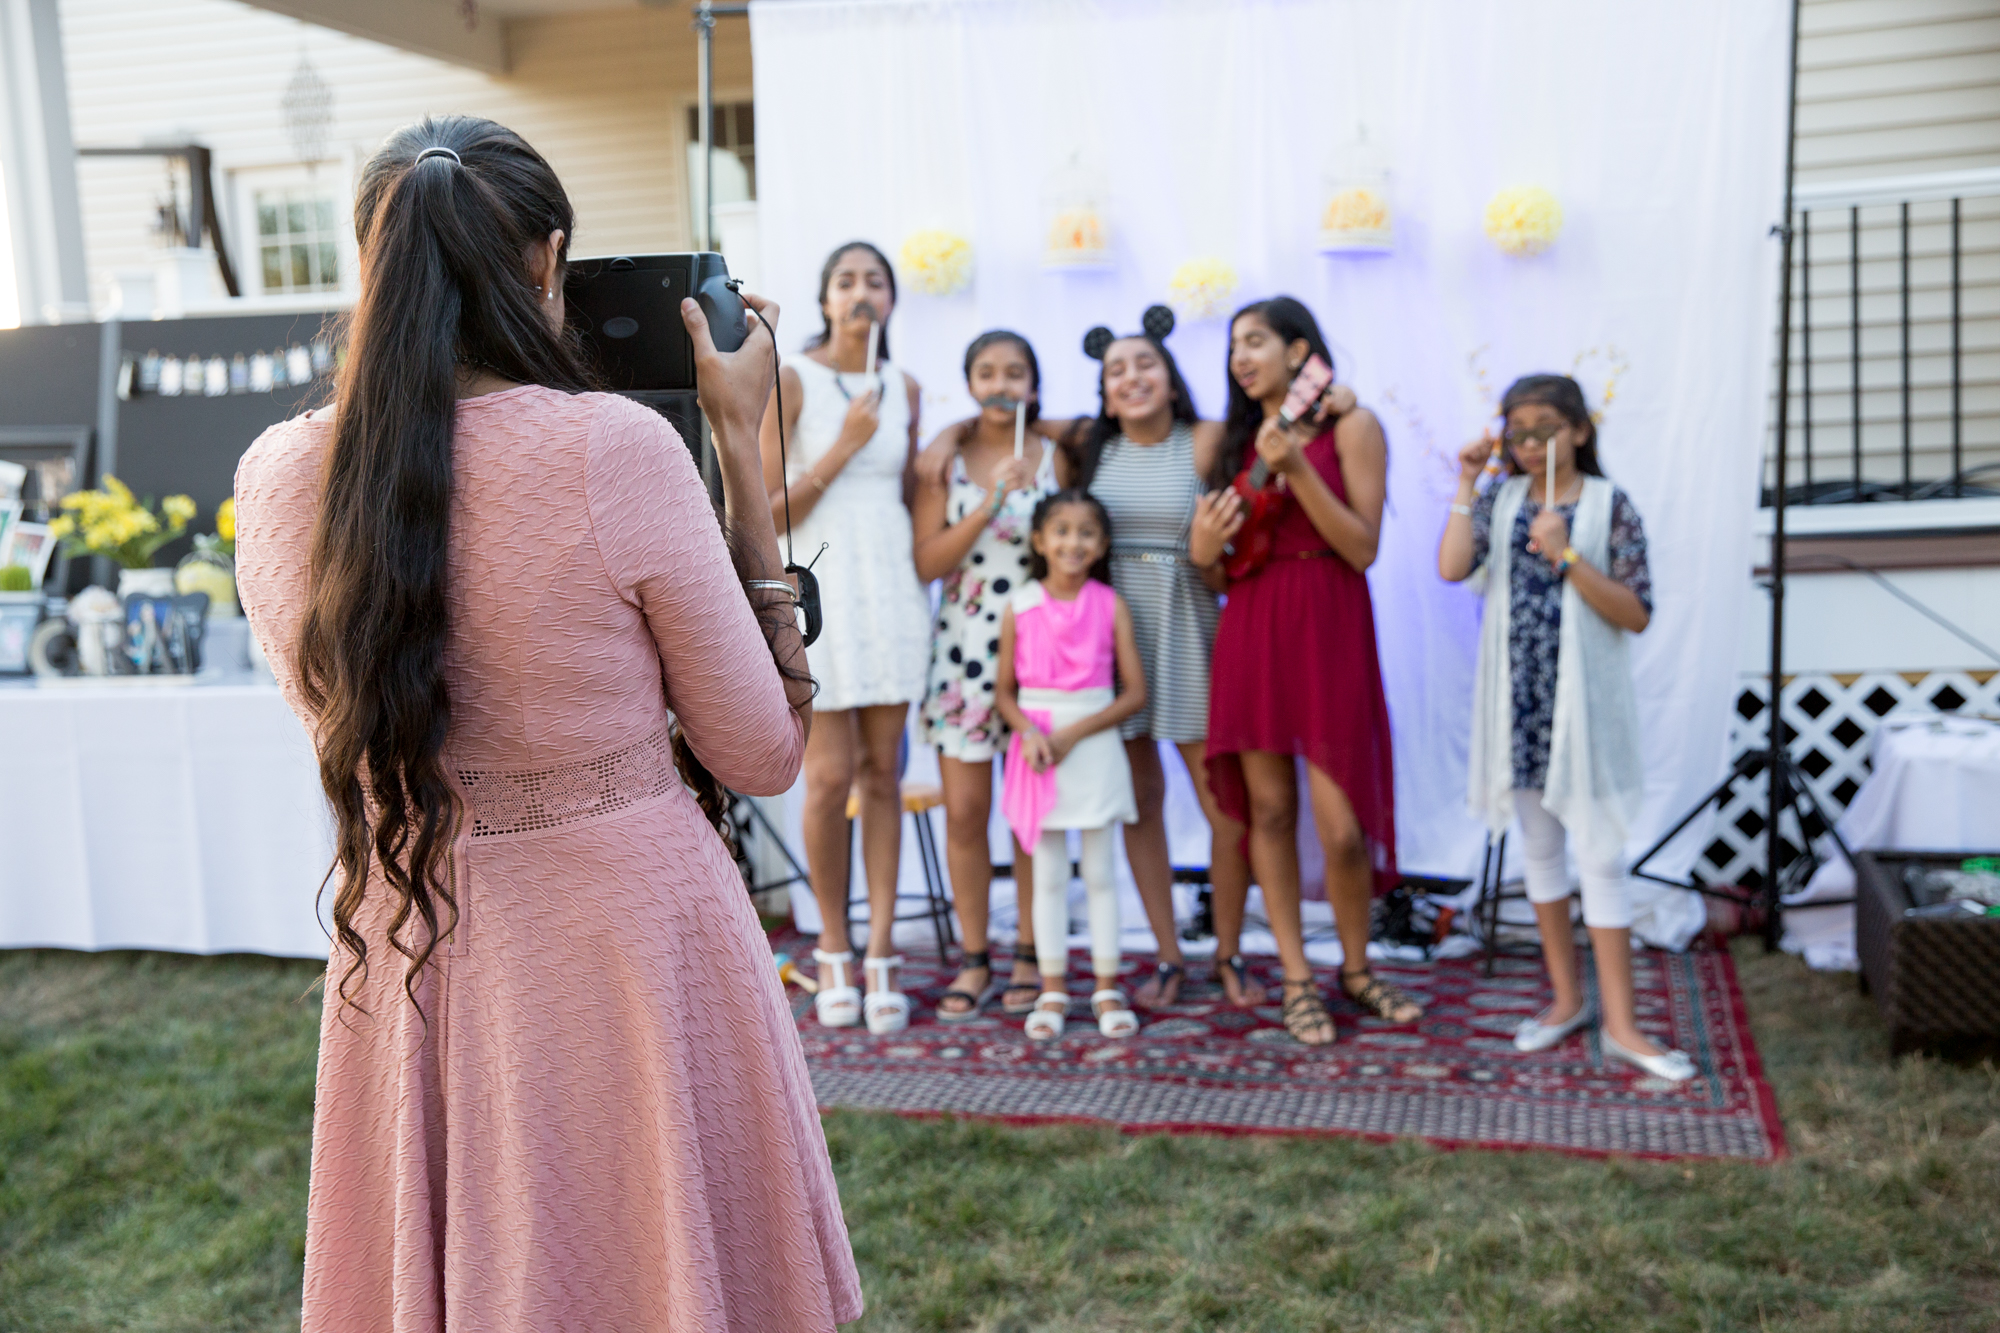 10-William Hendra Photography Singh Graduation Party.jpg